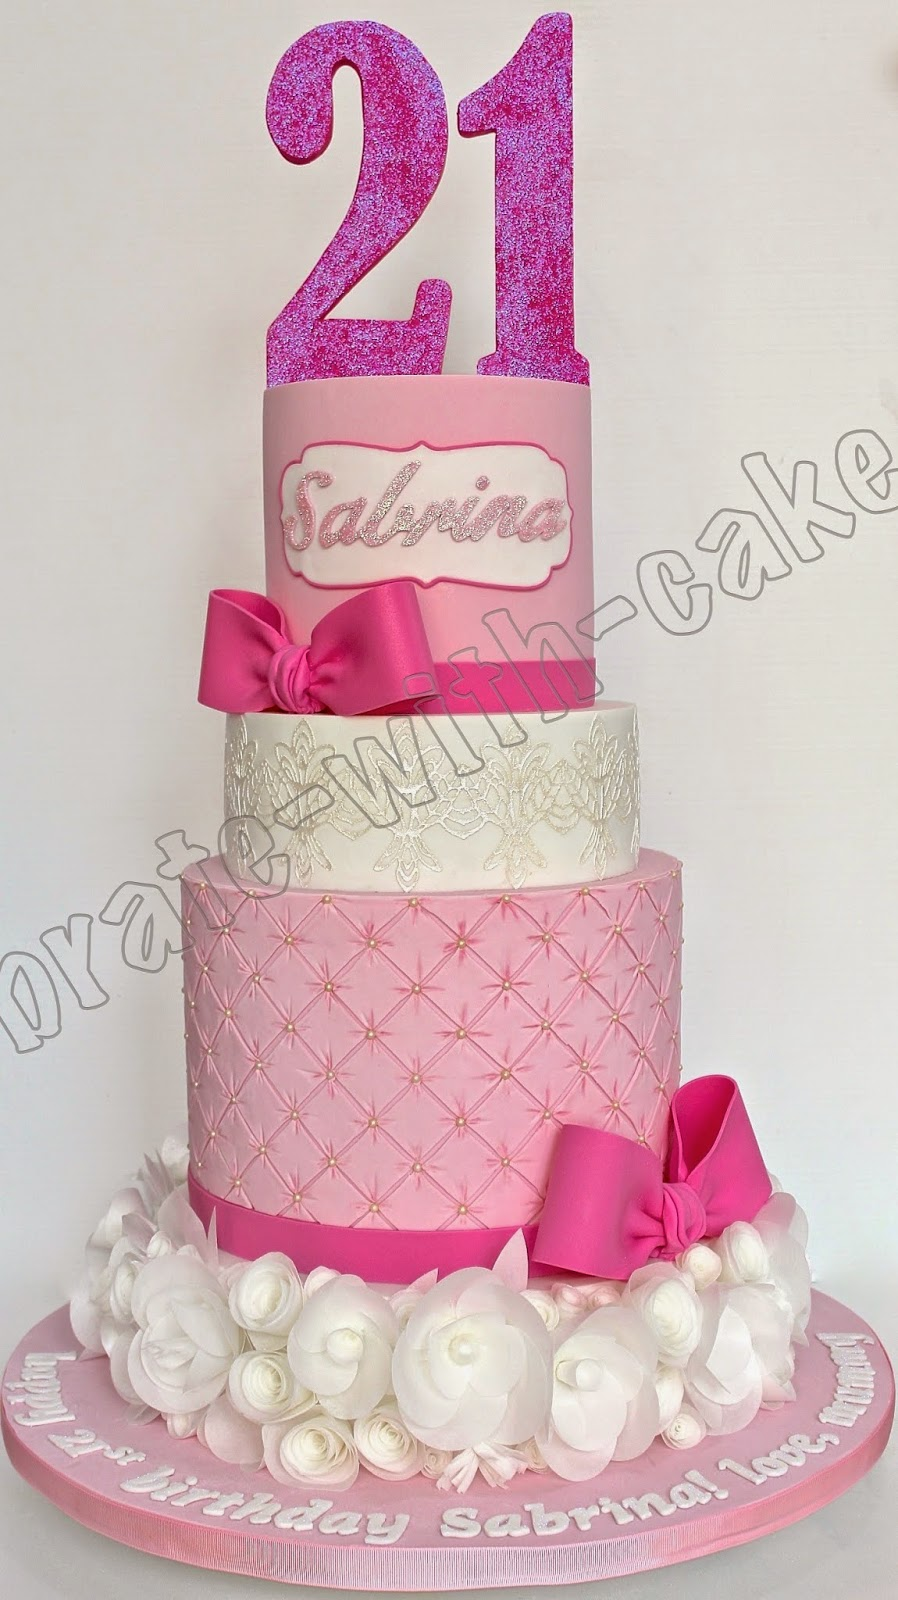 21st Birthday, bow and quilt with Wafer Flowers 4 tier Cake